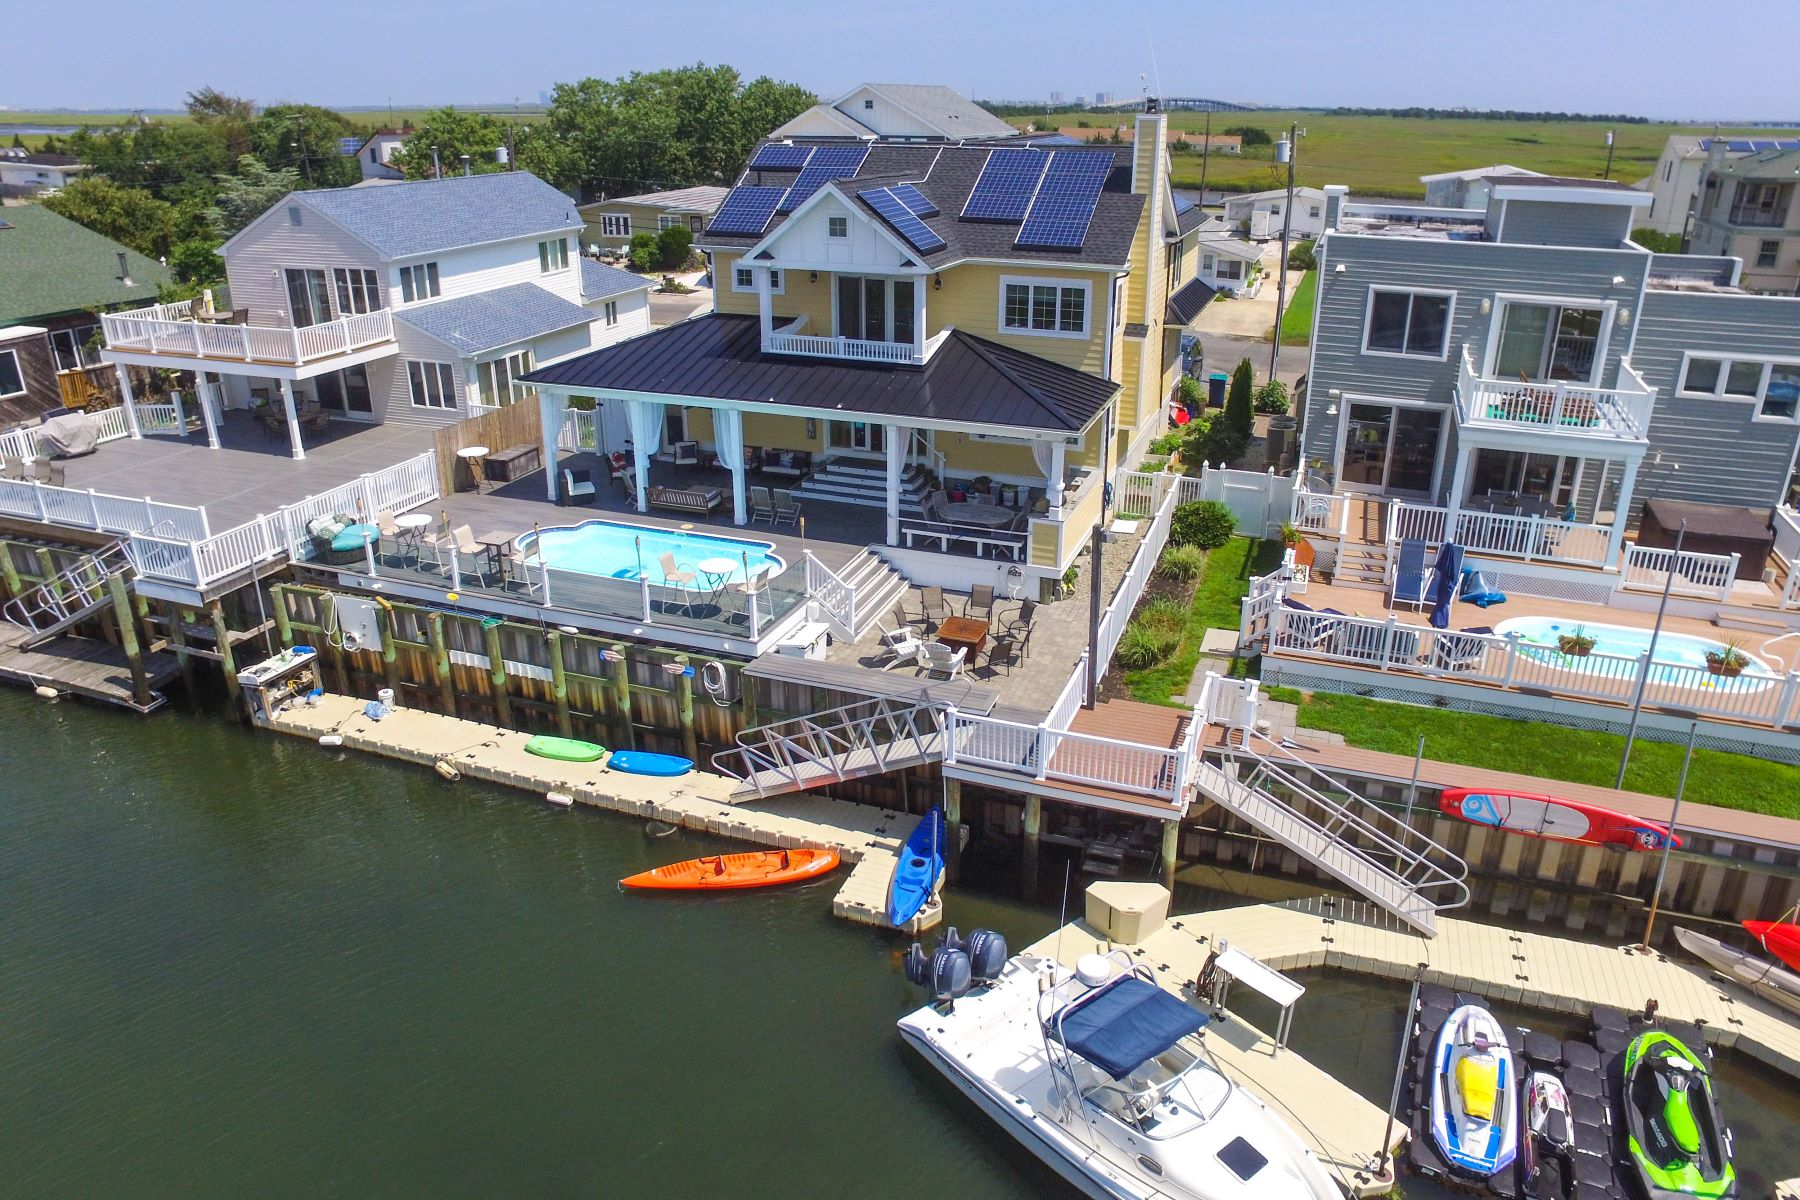 Maison unifamiliale pour l Vente à Luxurious Lagoon Home 8 Point Drive, Somers Point, New Jersey 08244 États-Unis